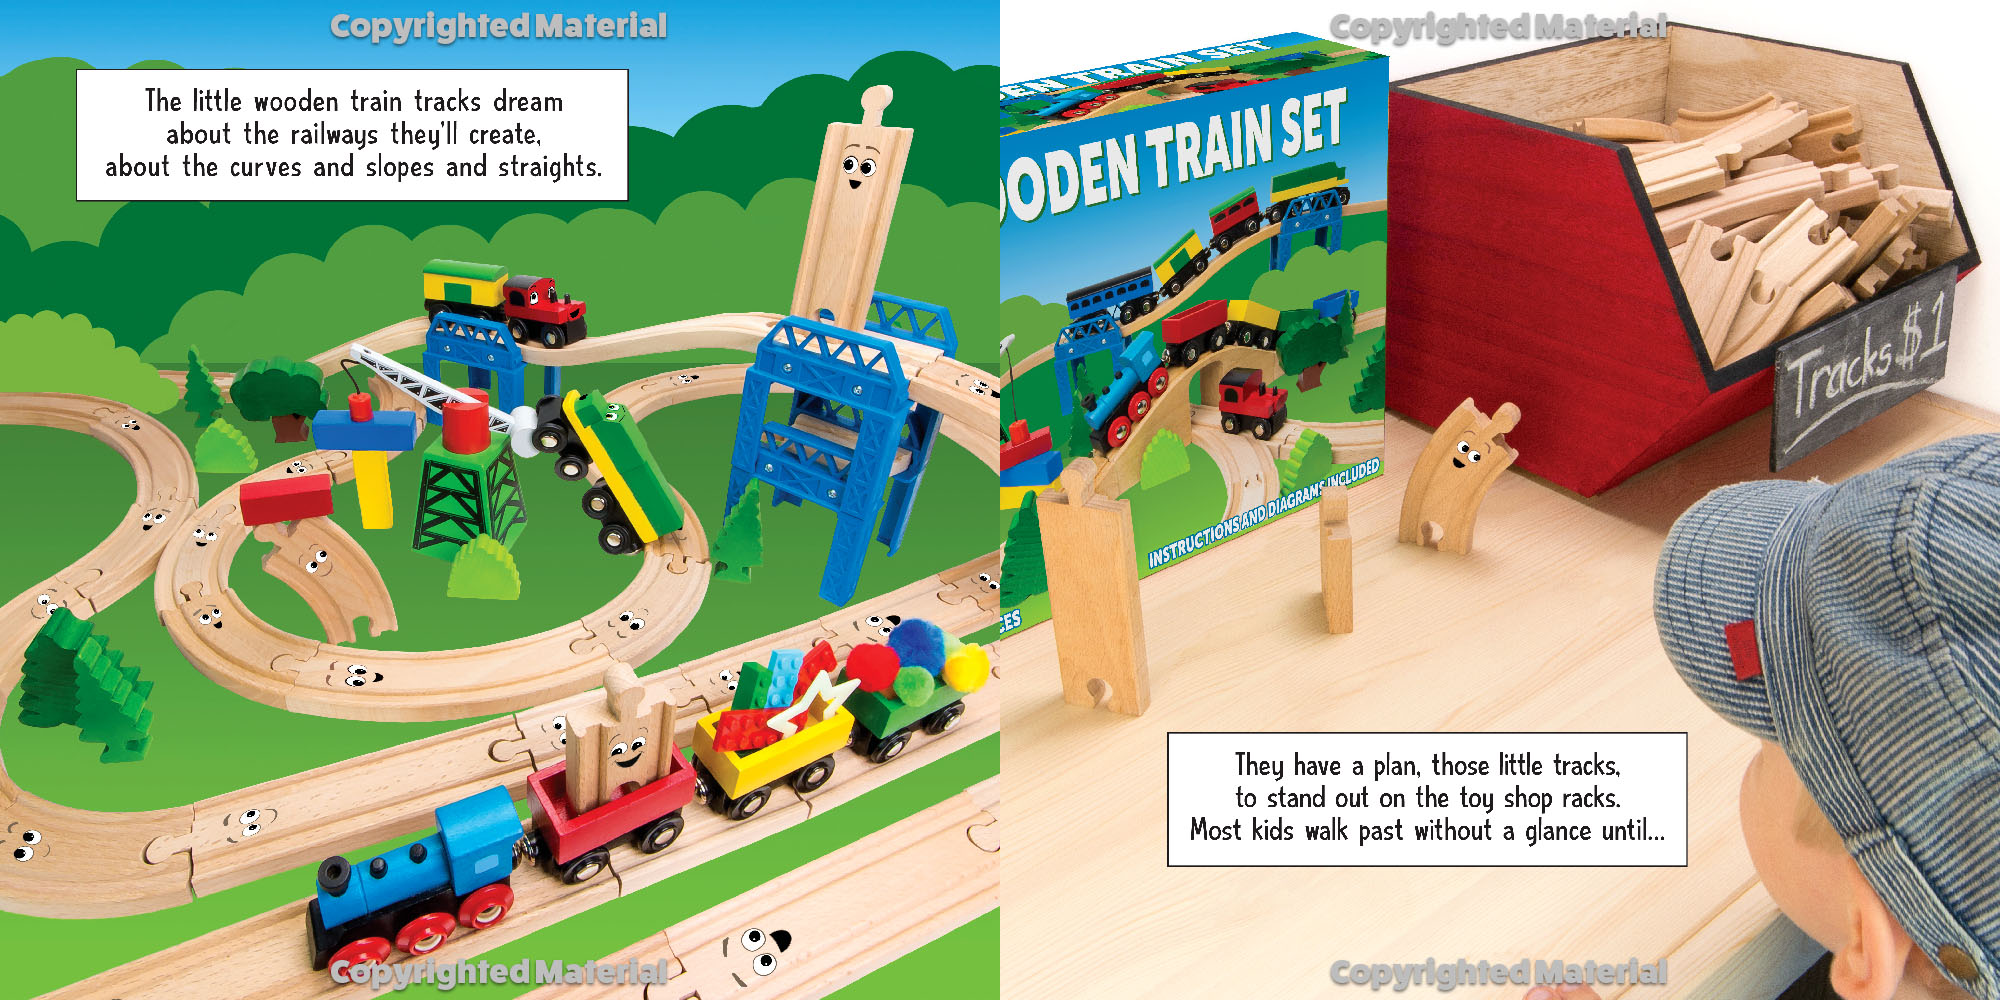 OLD TRACKS, NEW TRICKS by Jessica Petersen: a wooden train picture book that encourages creative play